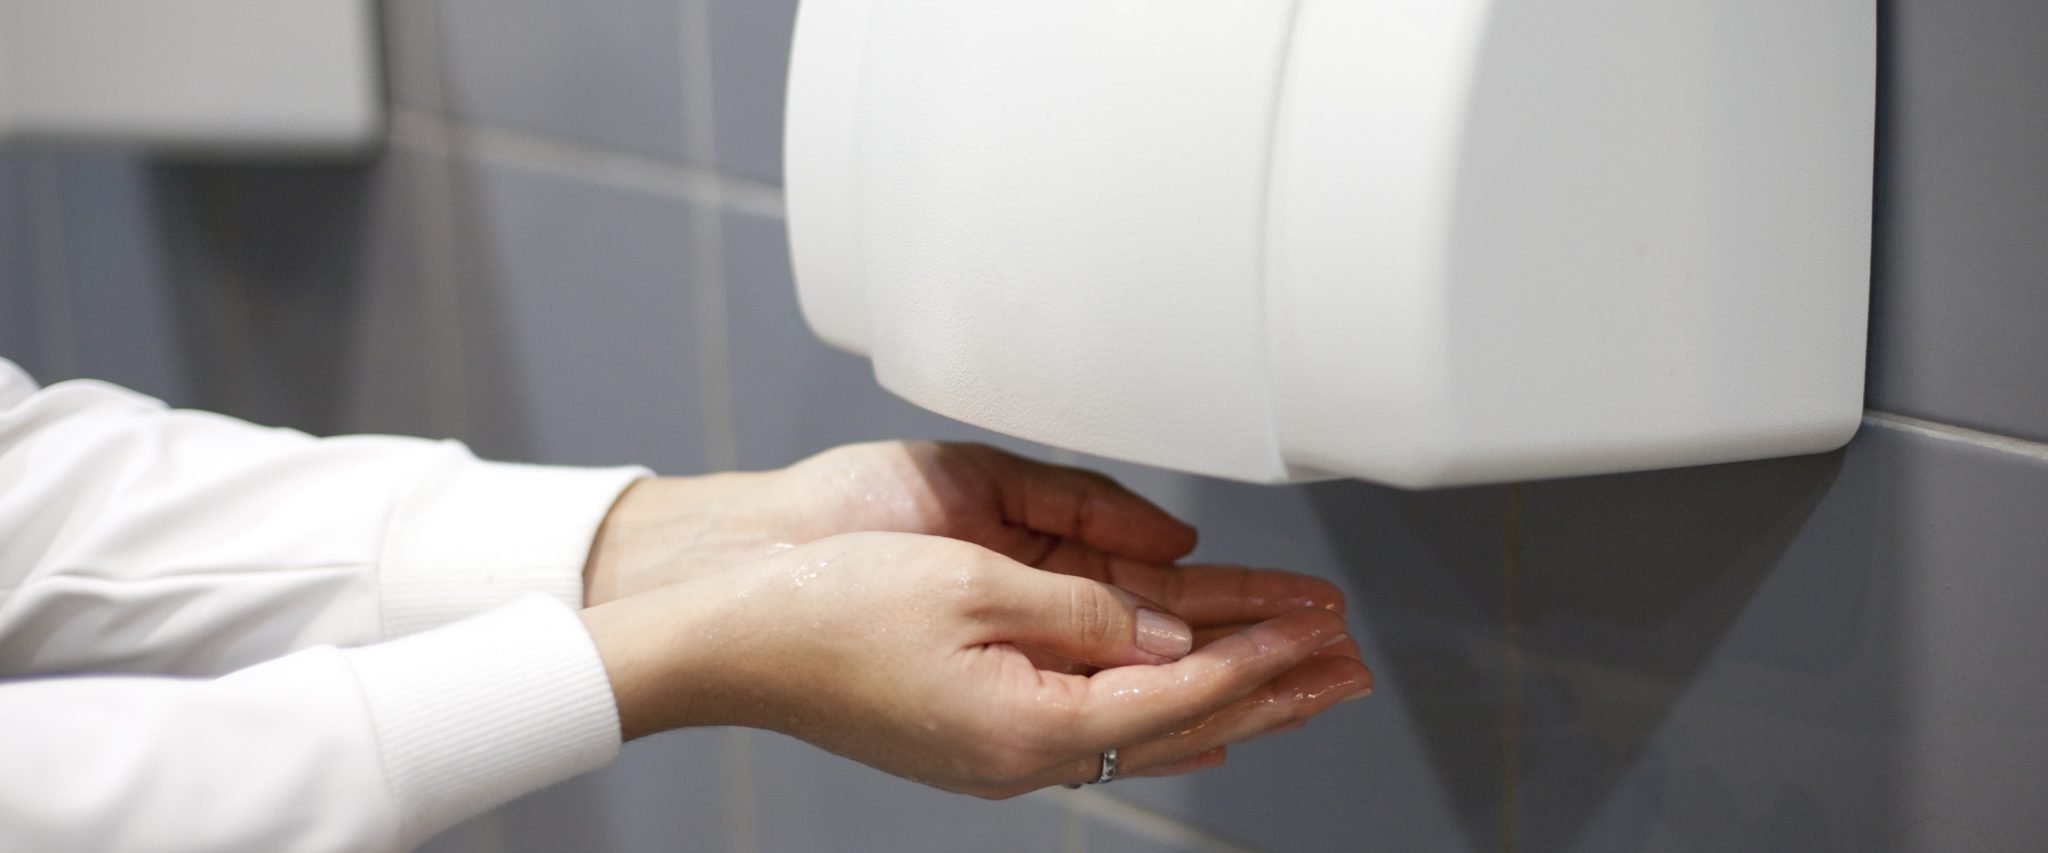 This One Item In Your Bathroom Could Be Making Your Customers Sick